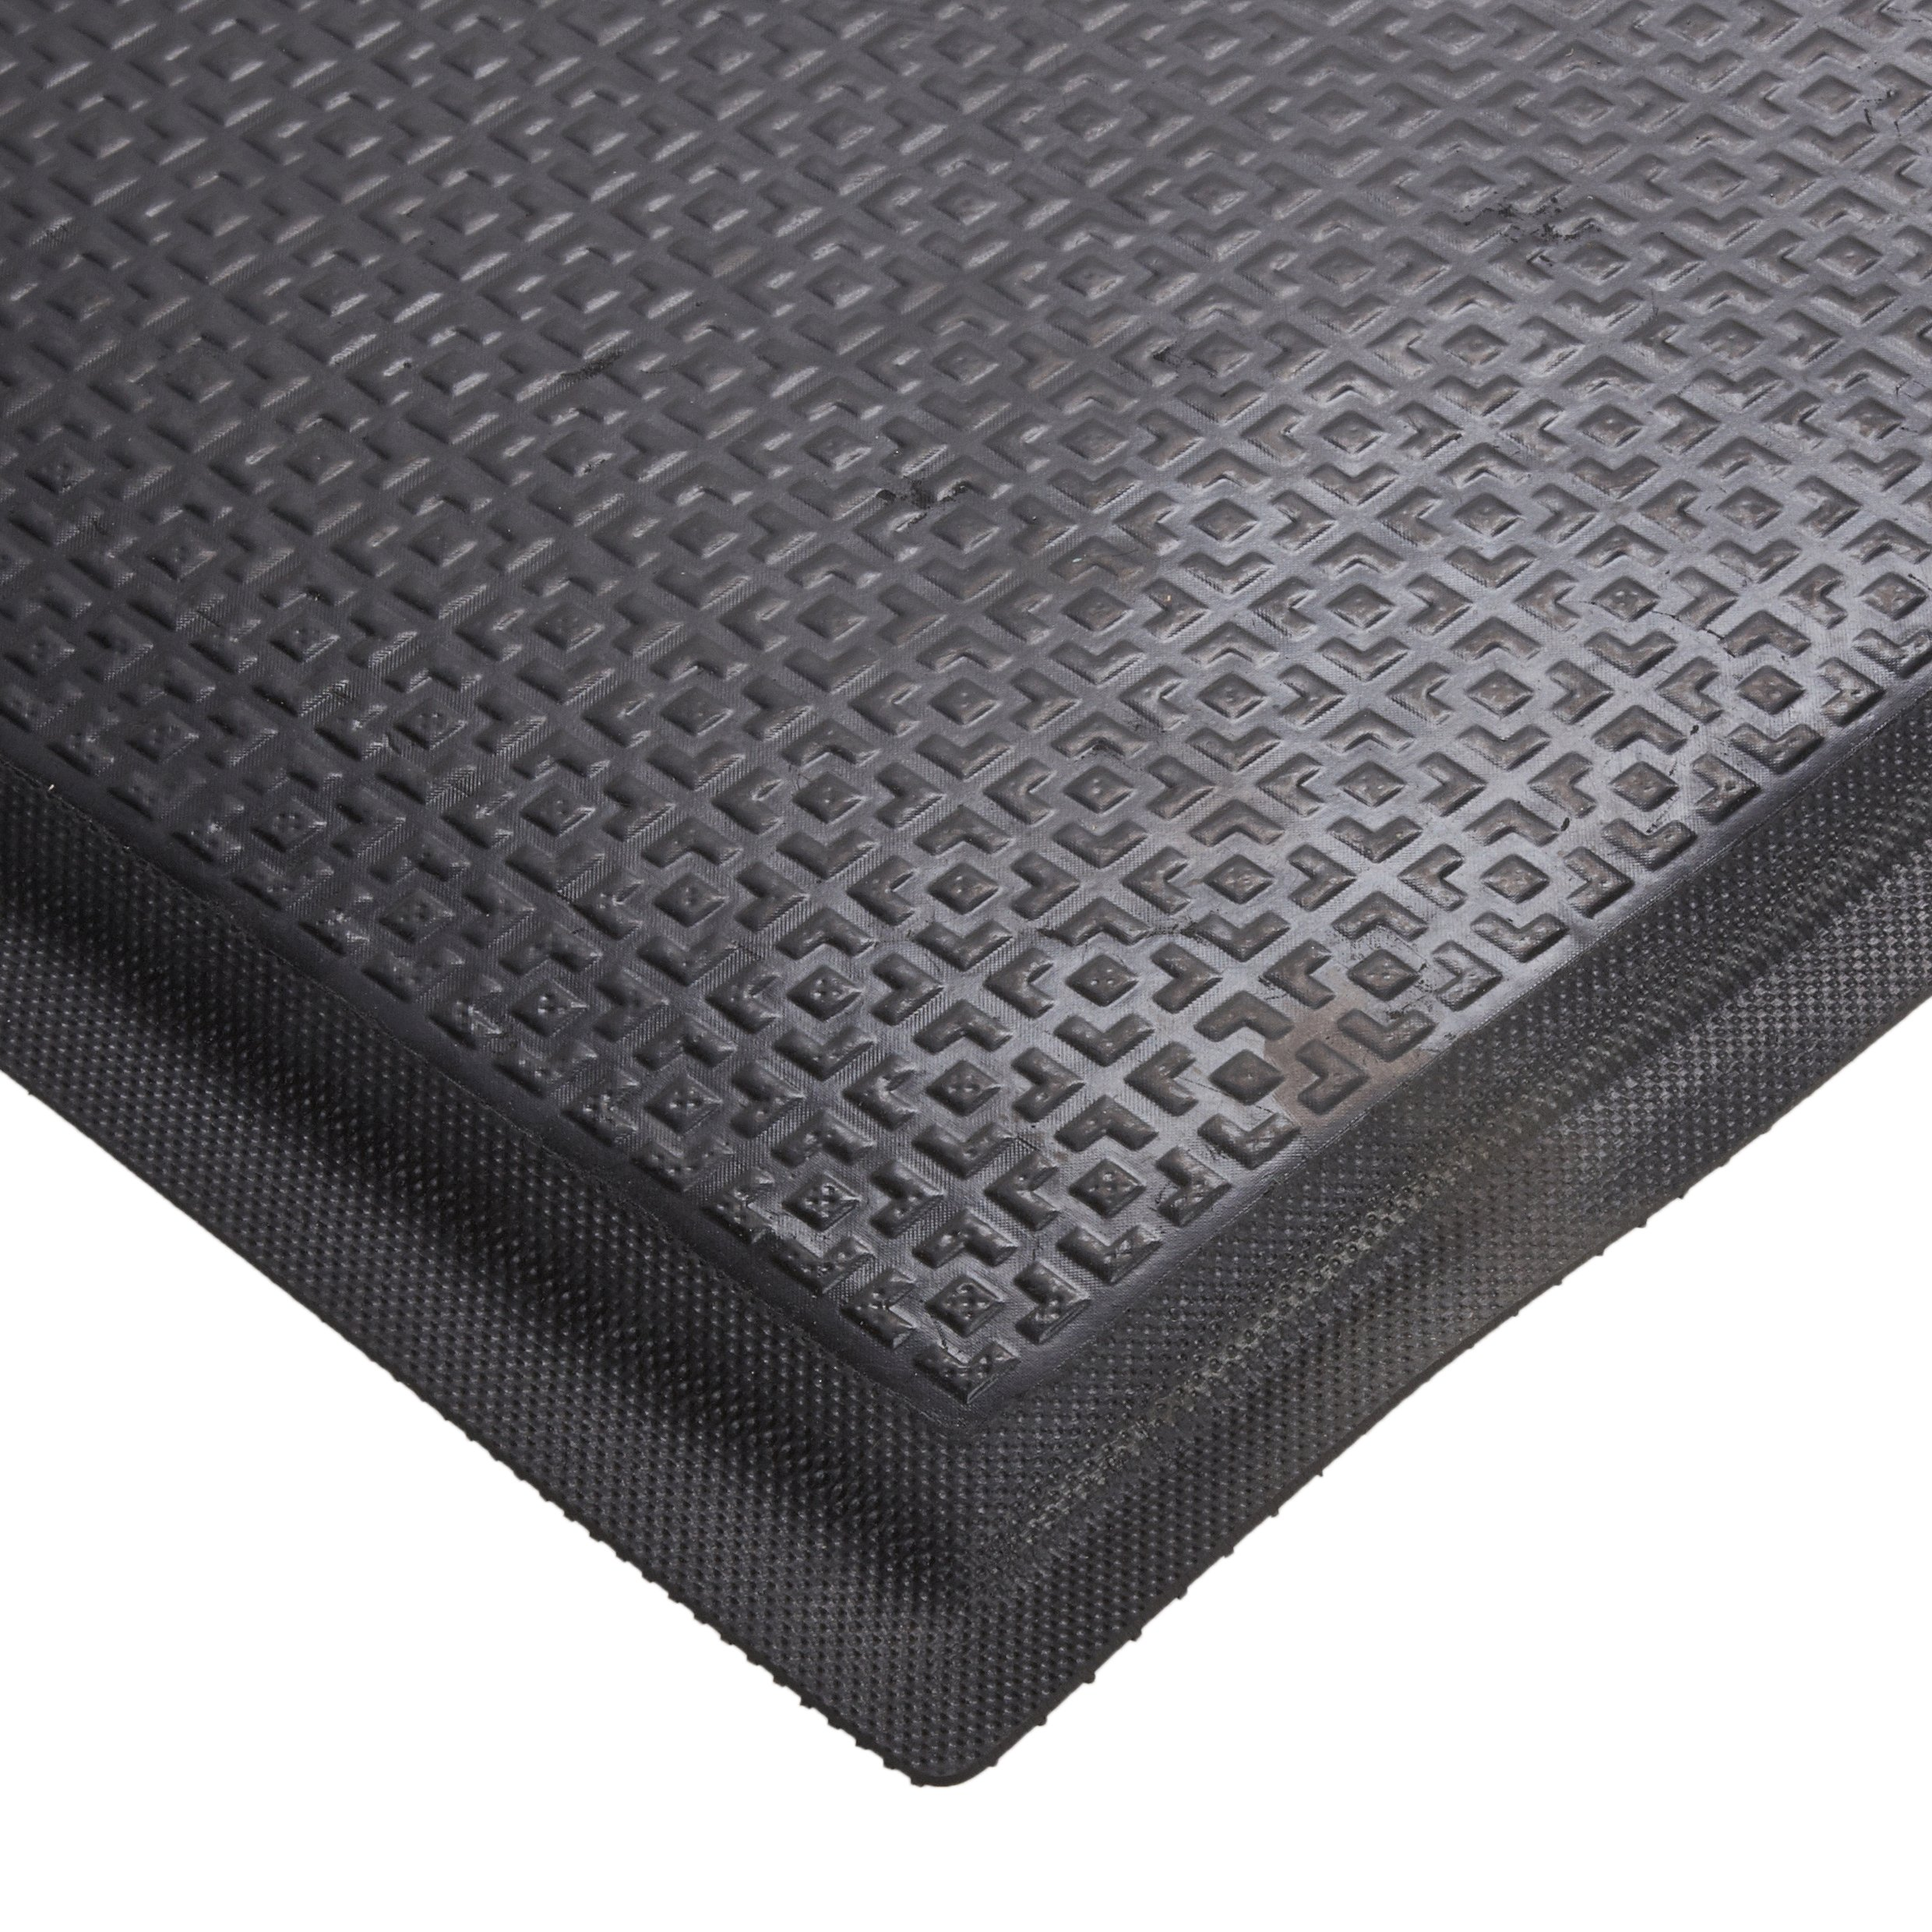 M+A Matting 465 Happy Feet Nitrile Rubber Texture Surface Anti-Fatigue Interior Floor Mat with Black Border, 3' Length x 2' Width, 1/2'' Thick